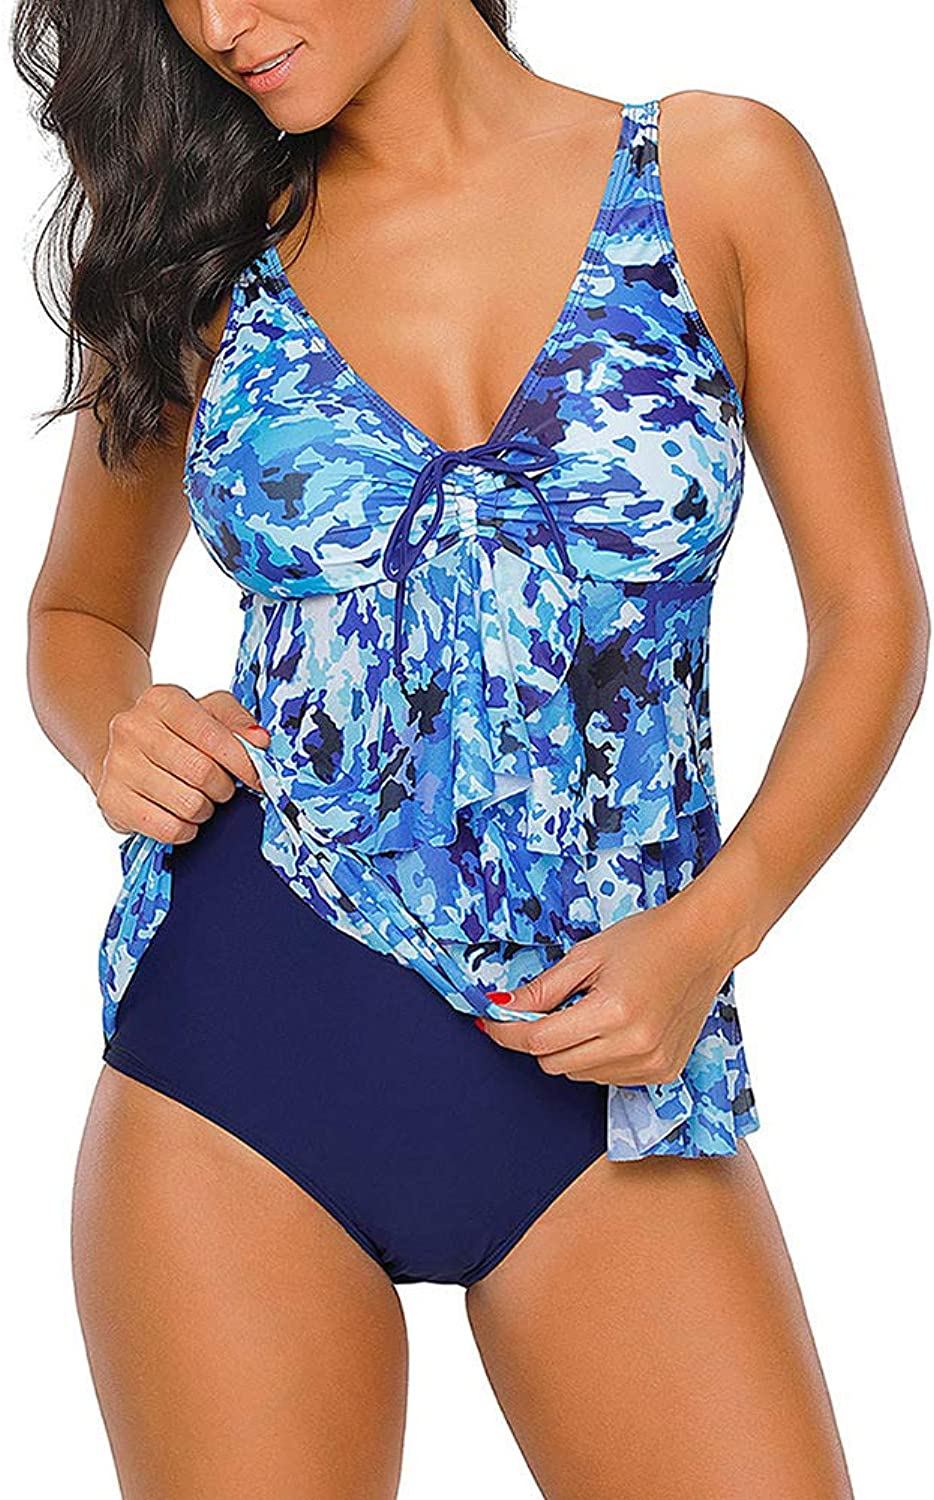 Women's Swimsuit, OnePiece Belly Control Swimsuit Skirt Swimsuit Large Size Print Swimsuit Set